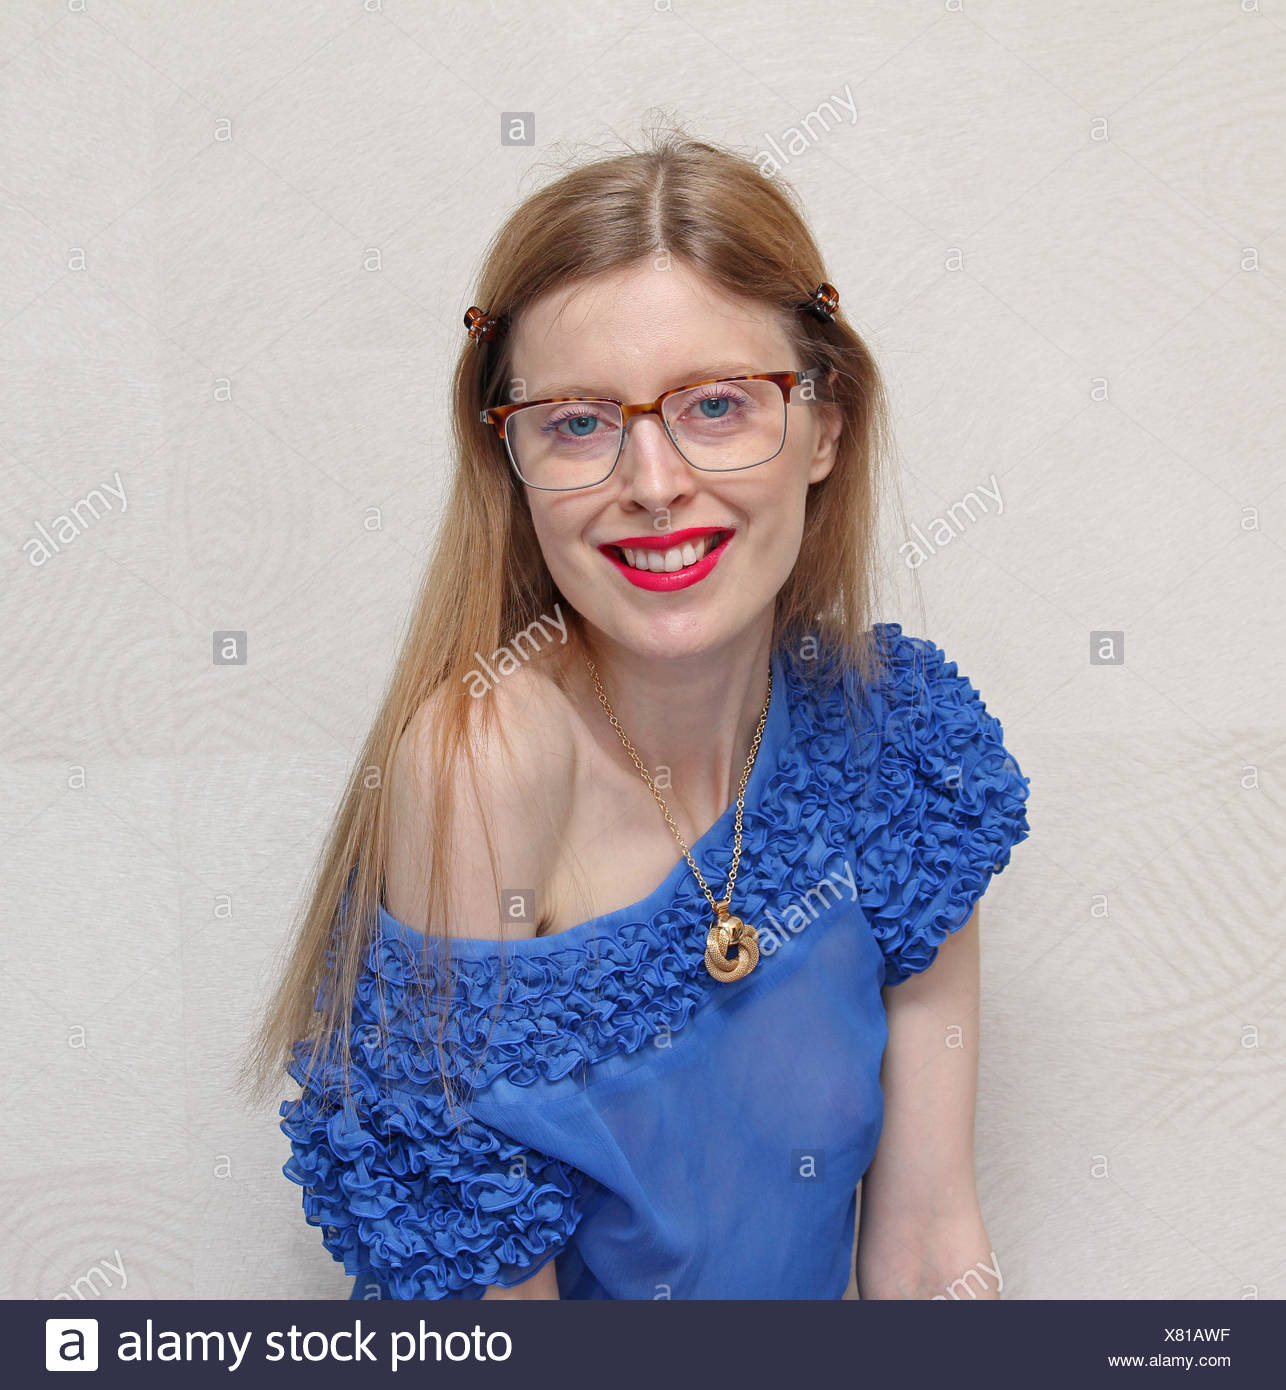 Young student with geek looking eyeglases but chic clothes and makeup - Stock Image